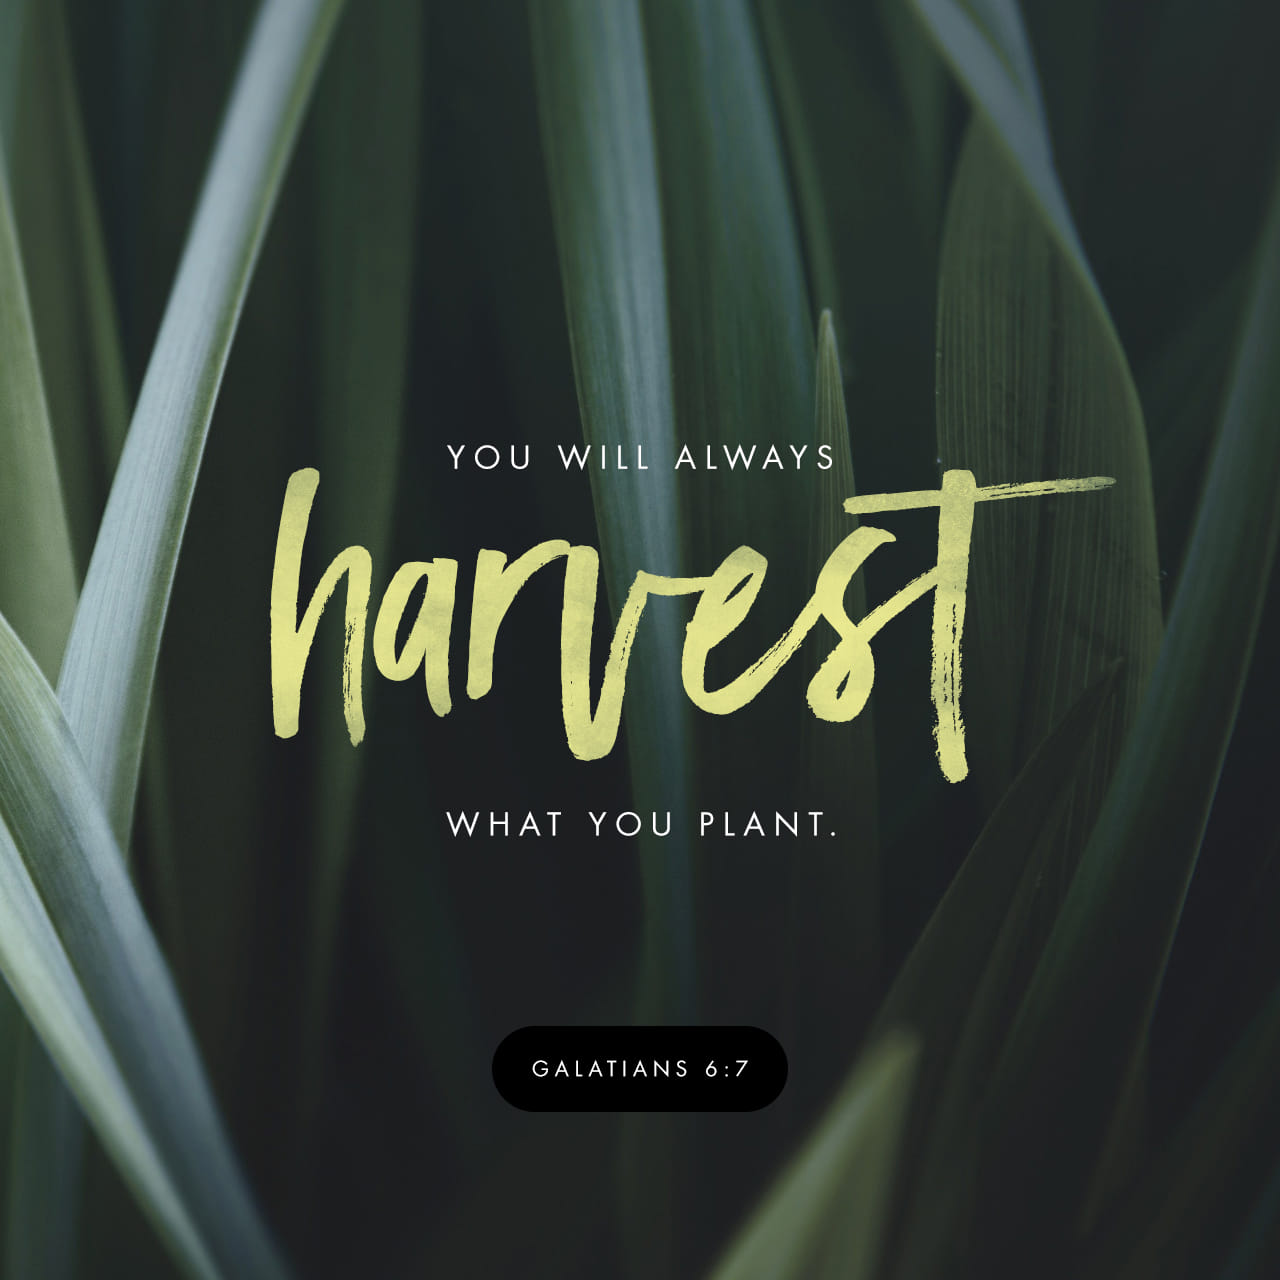 Galatians 6:7-8 Do not be deceived: God cannot be mocked. A man reaps what he sows. Whoever sows to please their flesh, from the flesh will reap destruction; whoever sows to please the Spirit, from the Spirit will re | New International Version (NIV)